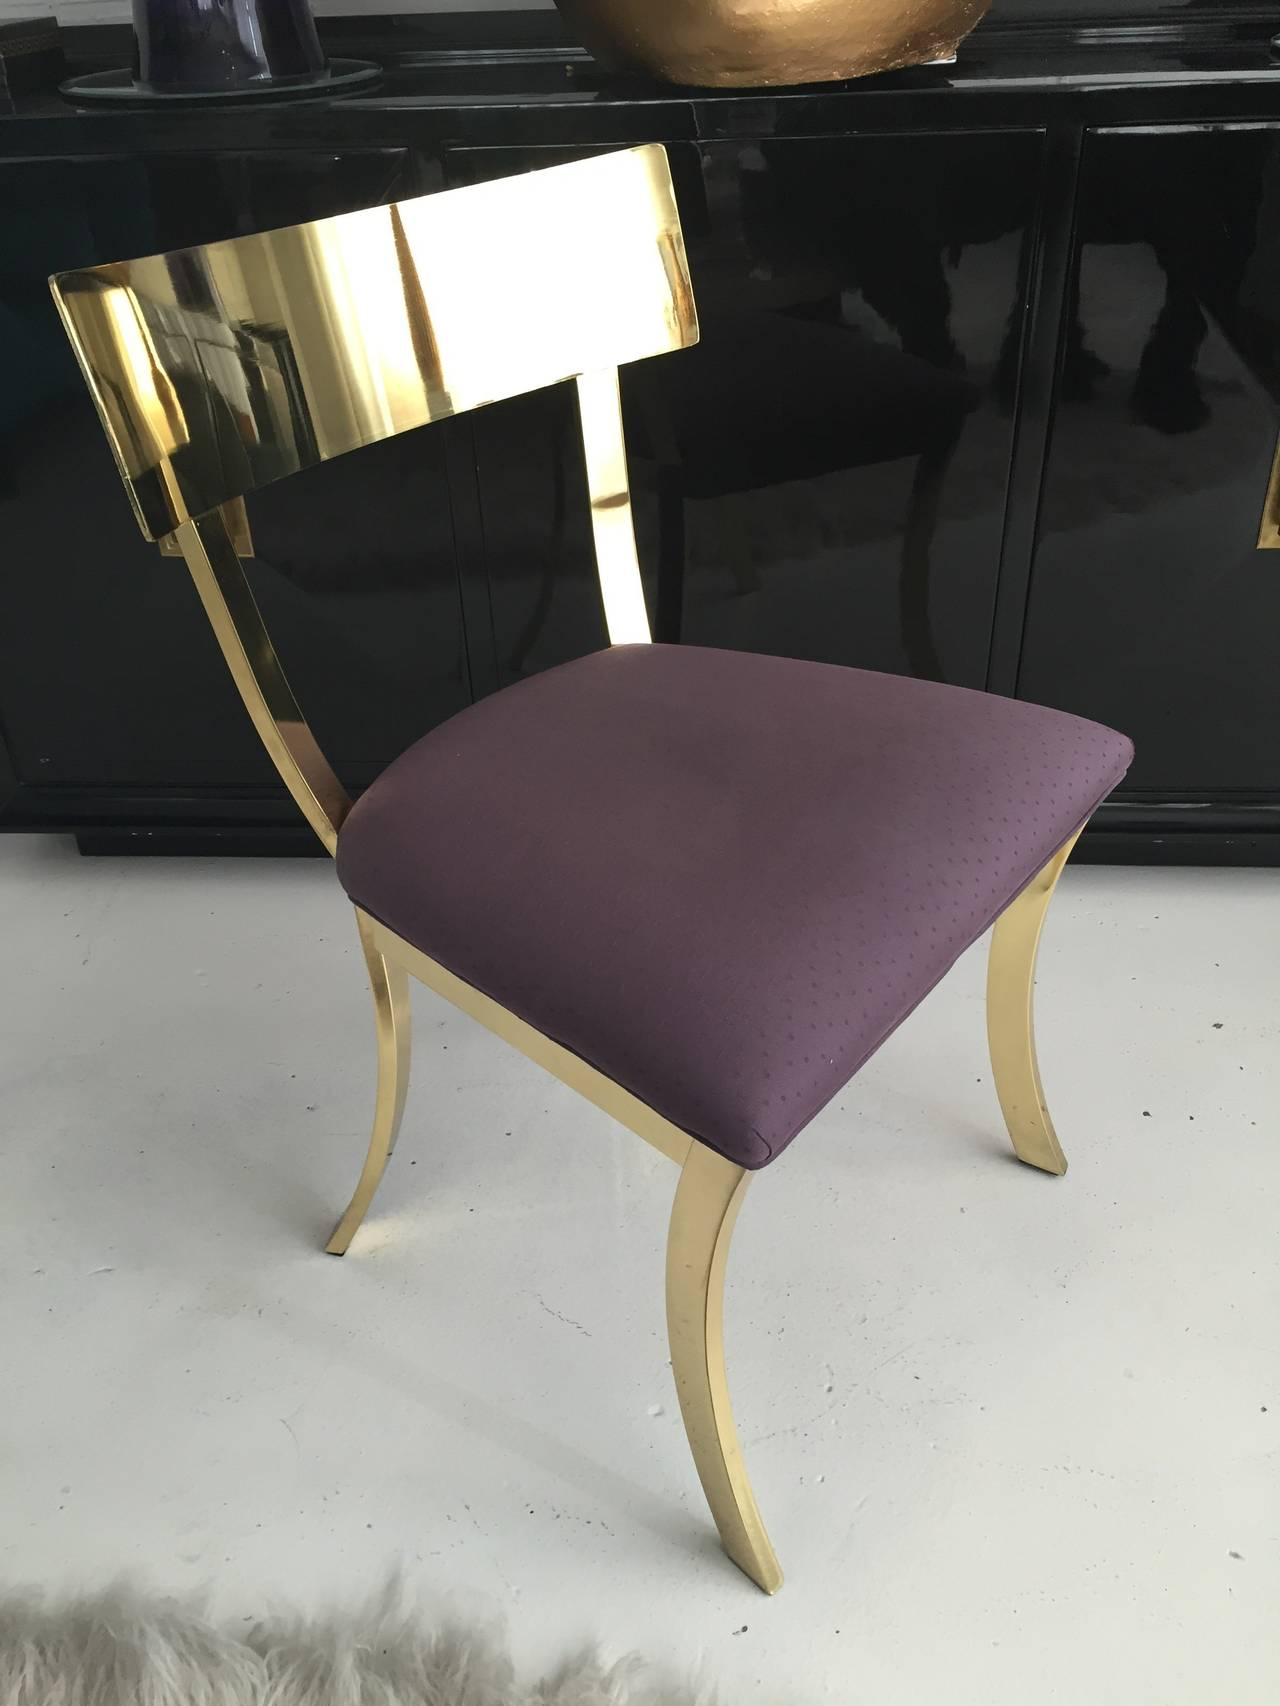 Stunning Polished Brass Klismos Chair by DIA 2